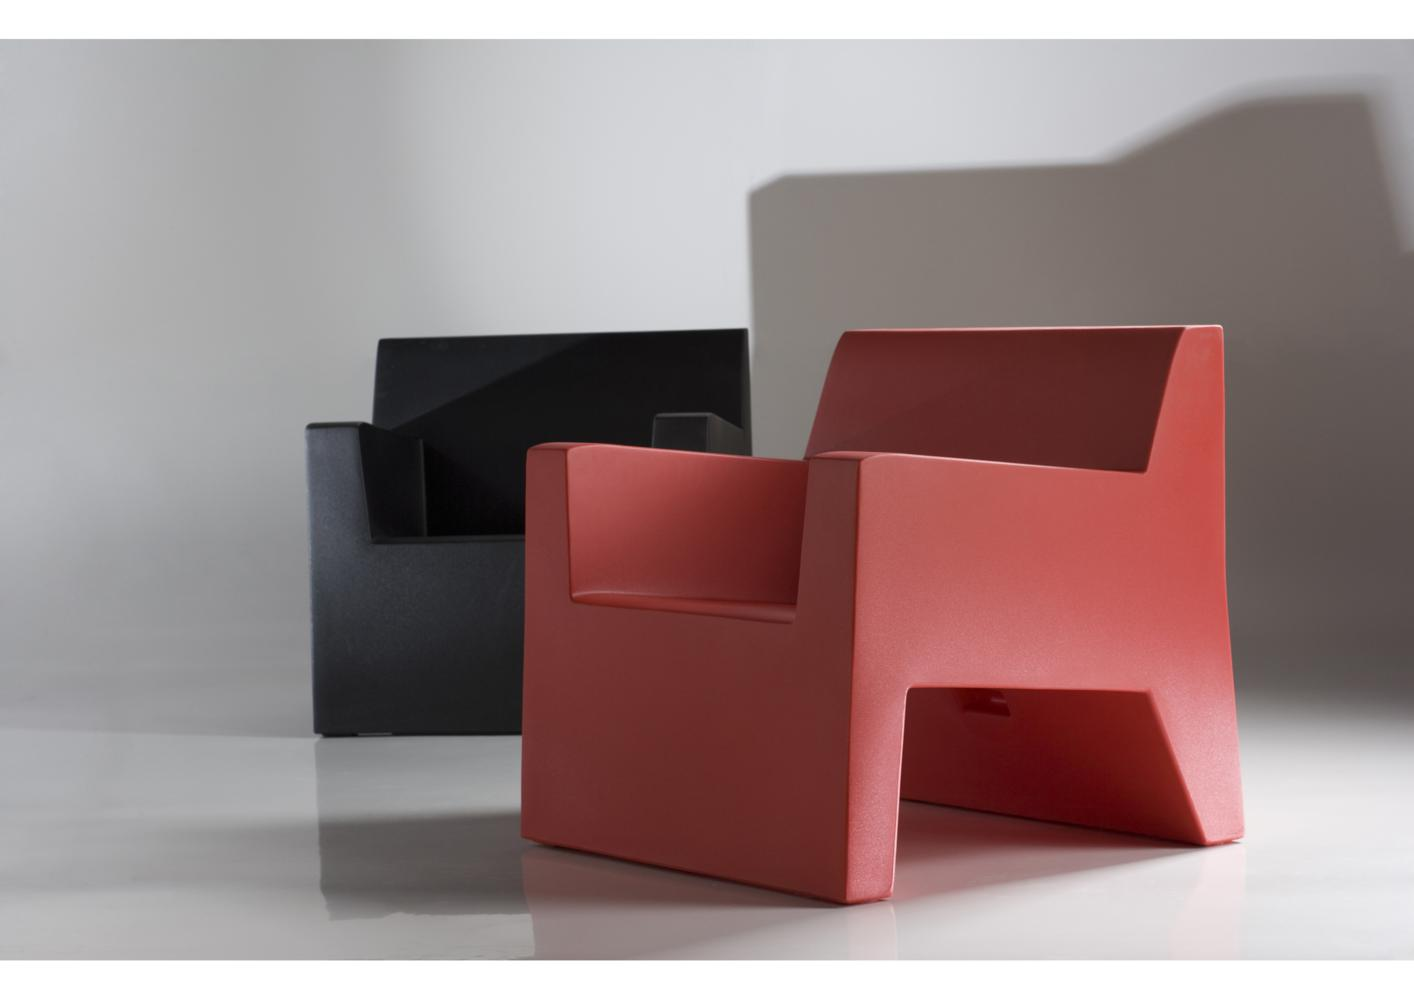 acheter votre table basse de jardin contemporaine chez simeuble. Black Bedroom Furniture Sets. Home Design Ideas